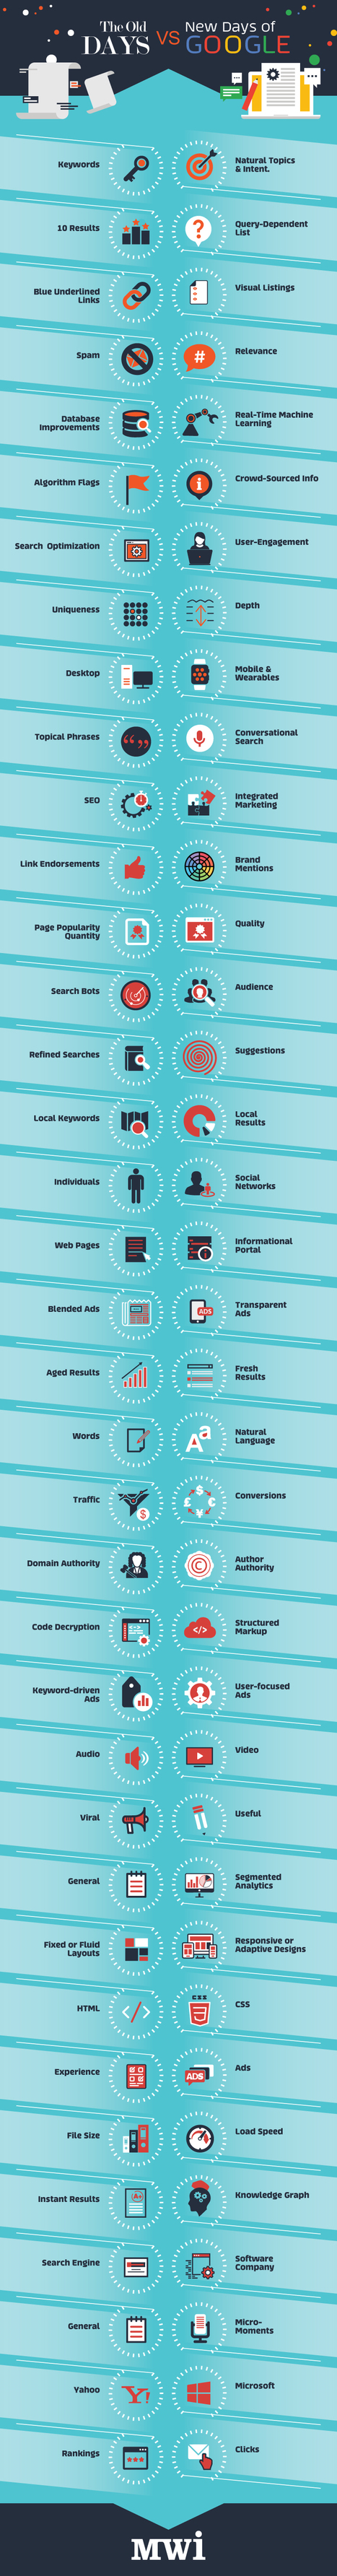 The Old Days VS New Days of Google [Infographic] | Zentrum für multimediales Lehren und Lernen (LLZ) | Scoop.it